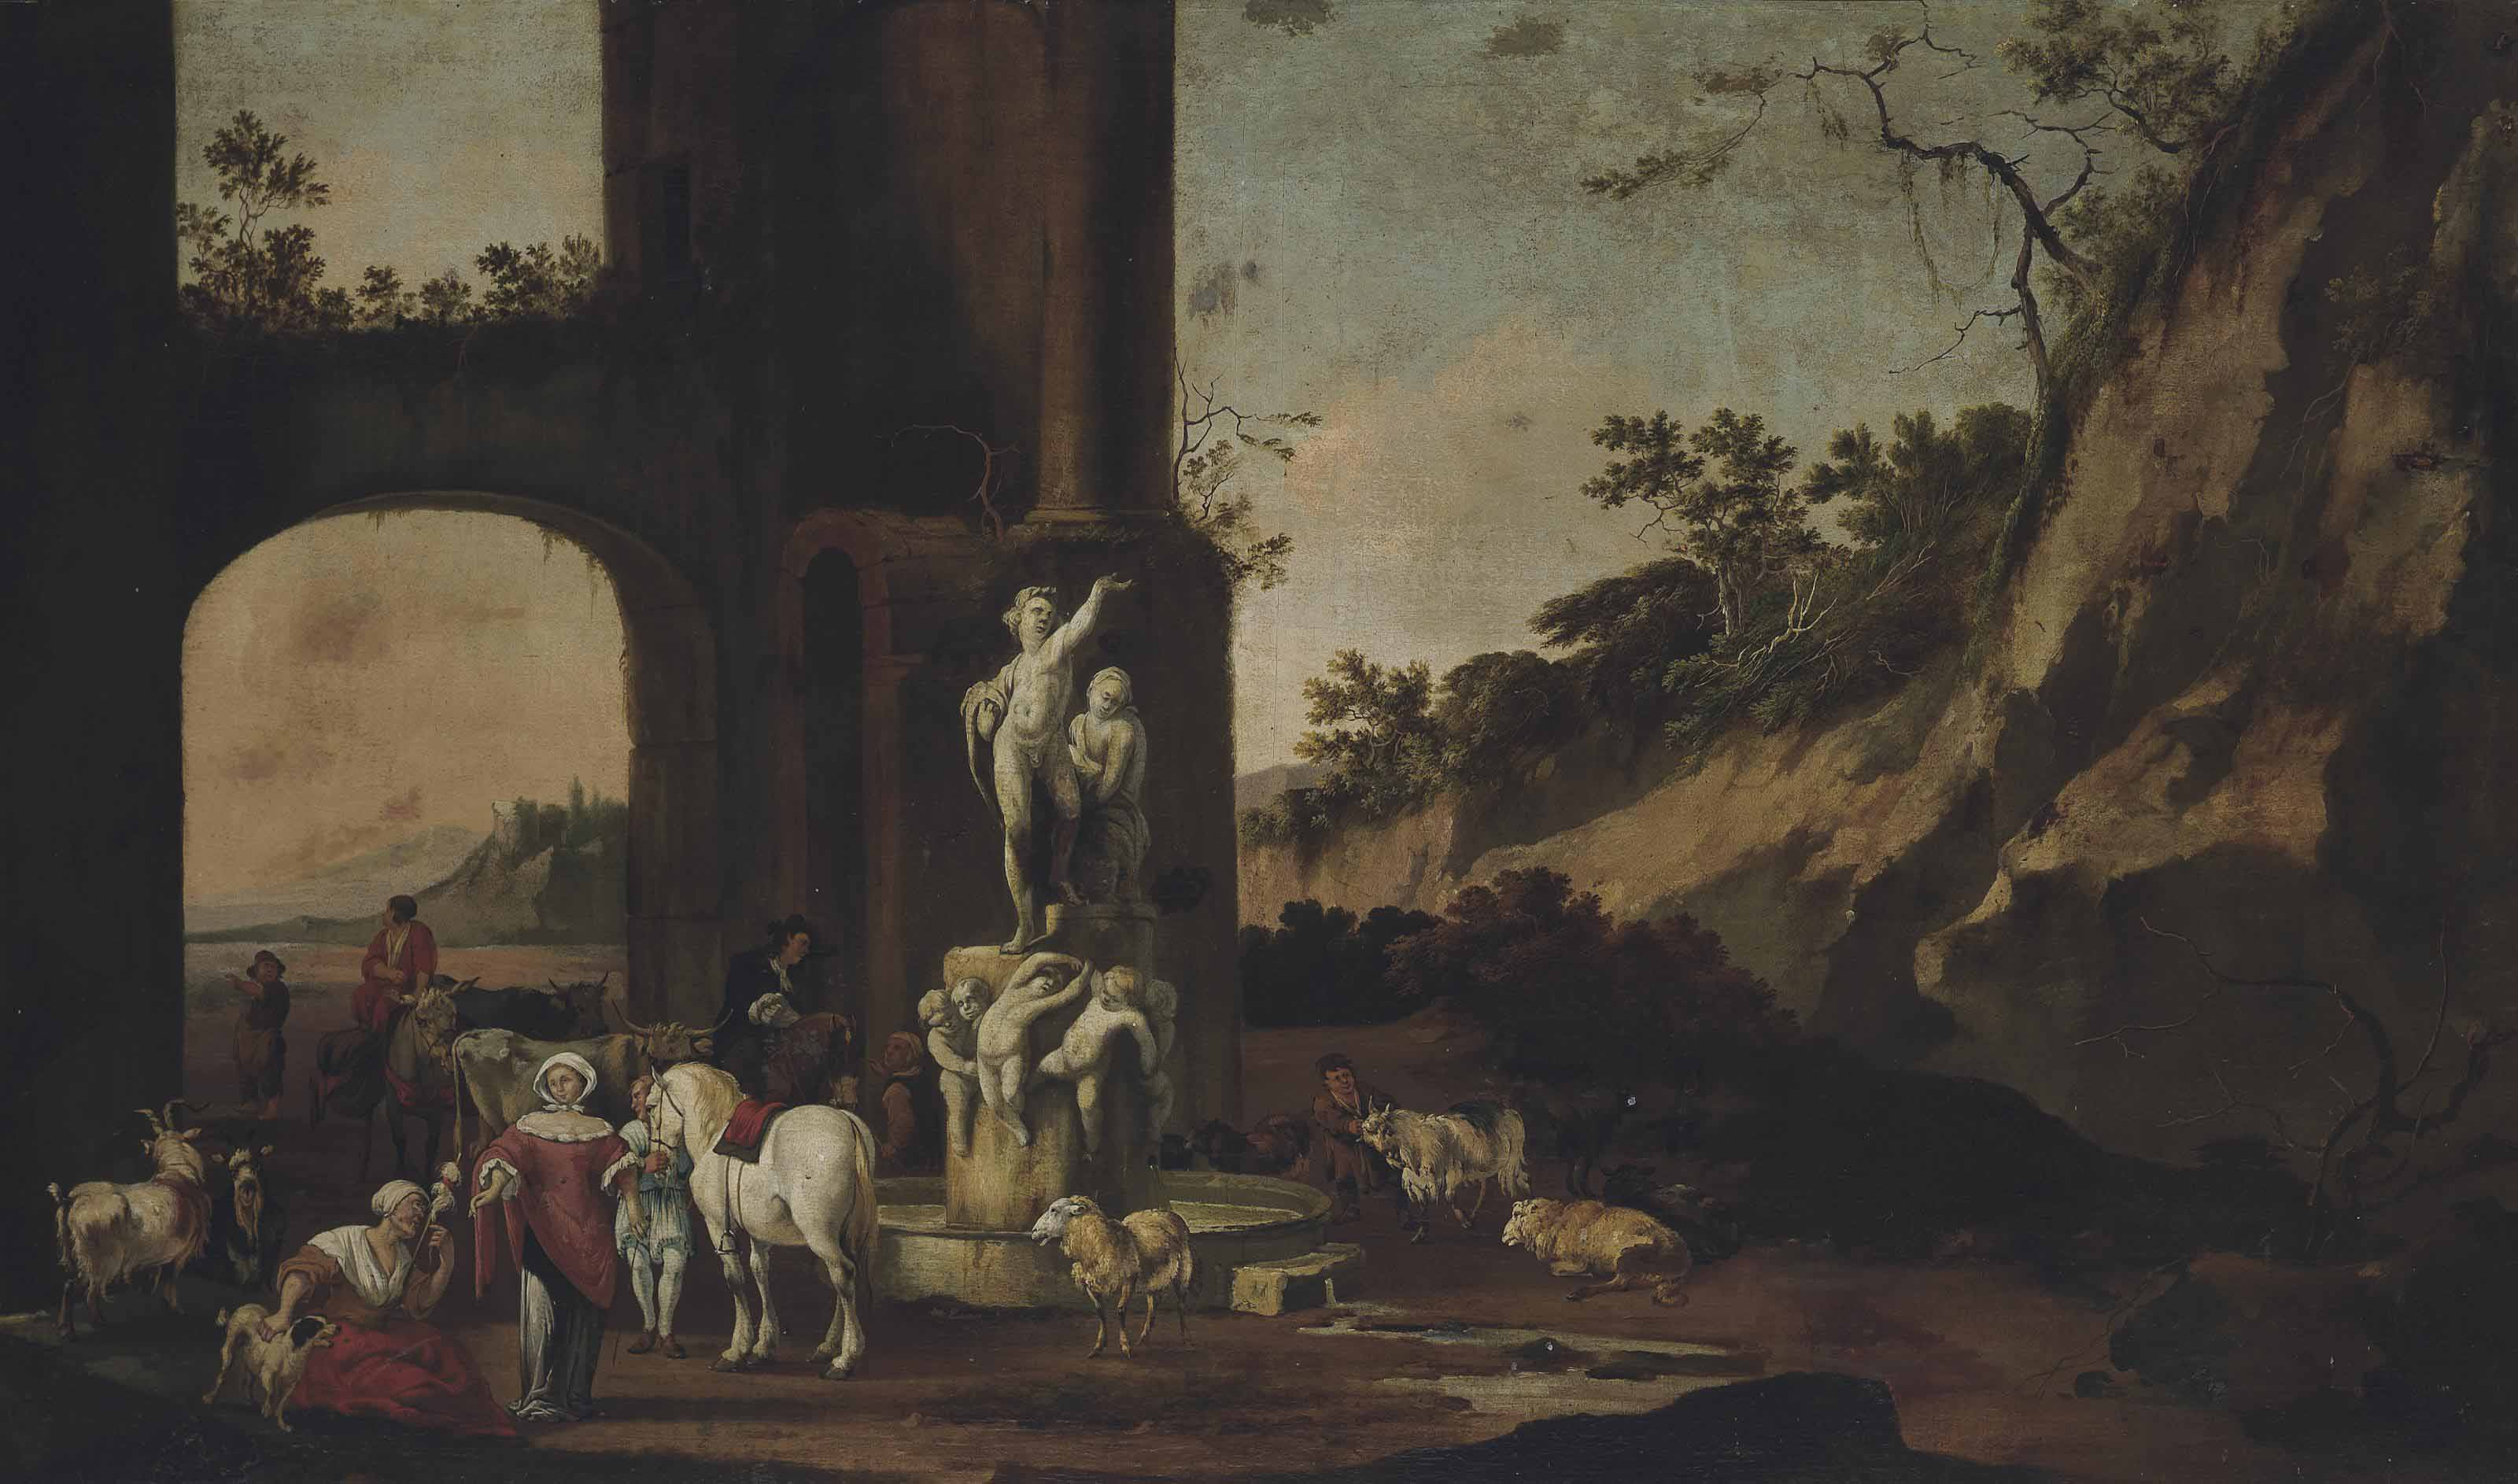 A rocky landscape with figures, horses, goats, bulls and sheep by a fountain